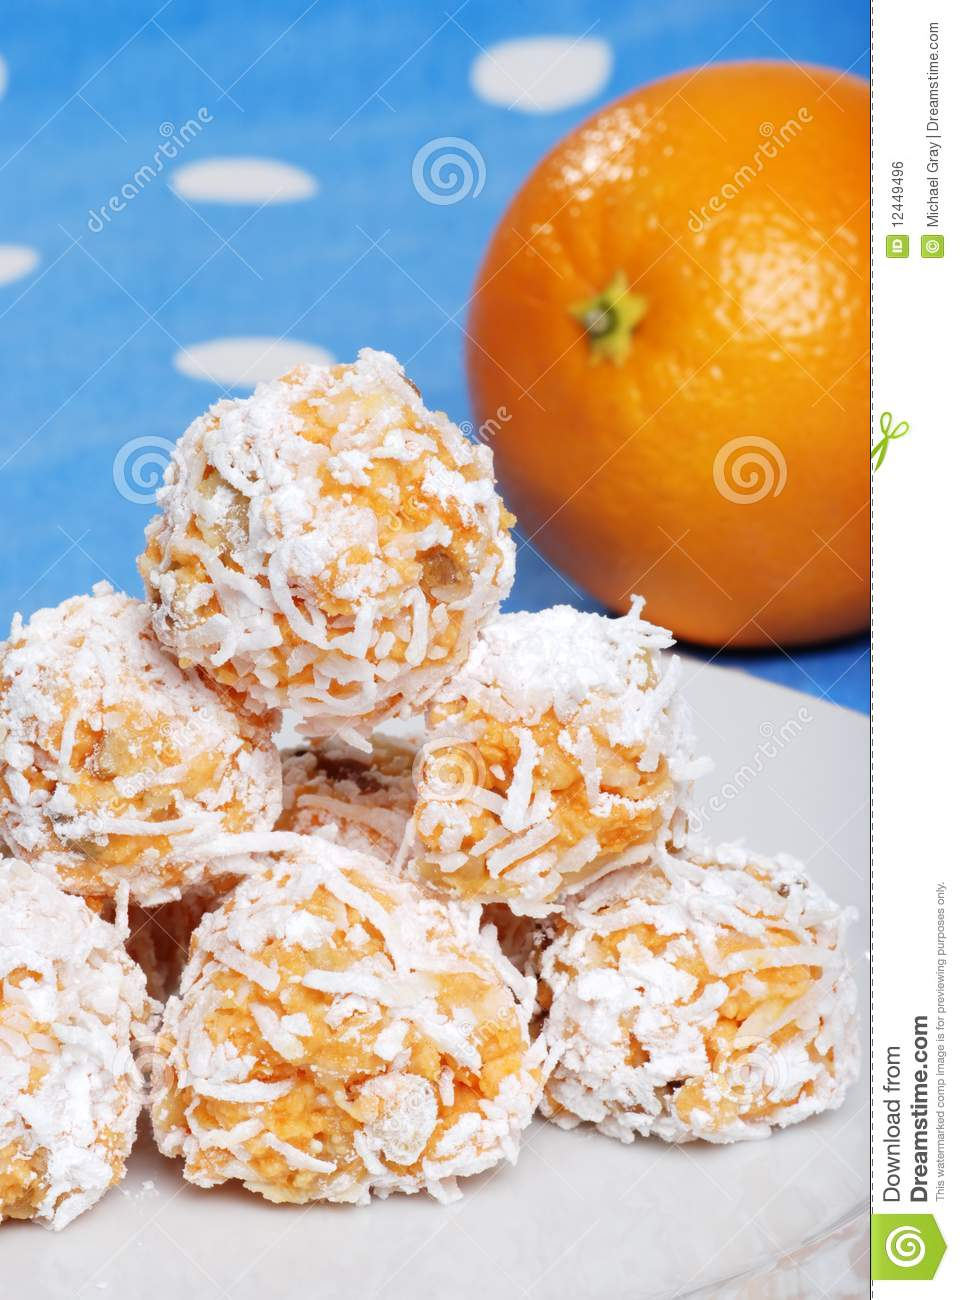 Orange Snowball Cookies With Fruit In The Backgrou Stock Photo